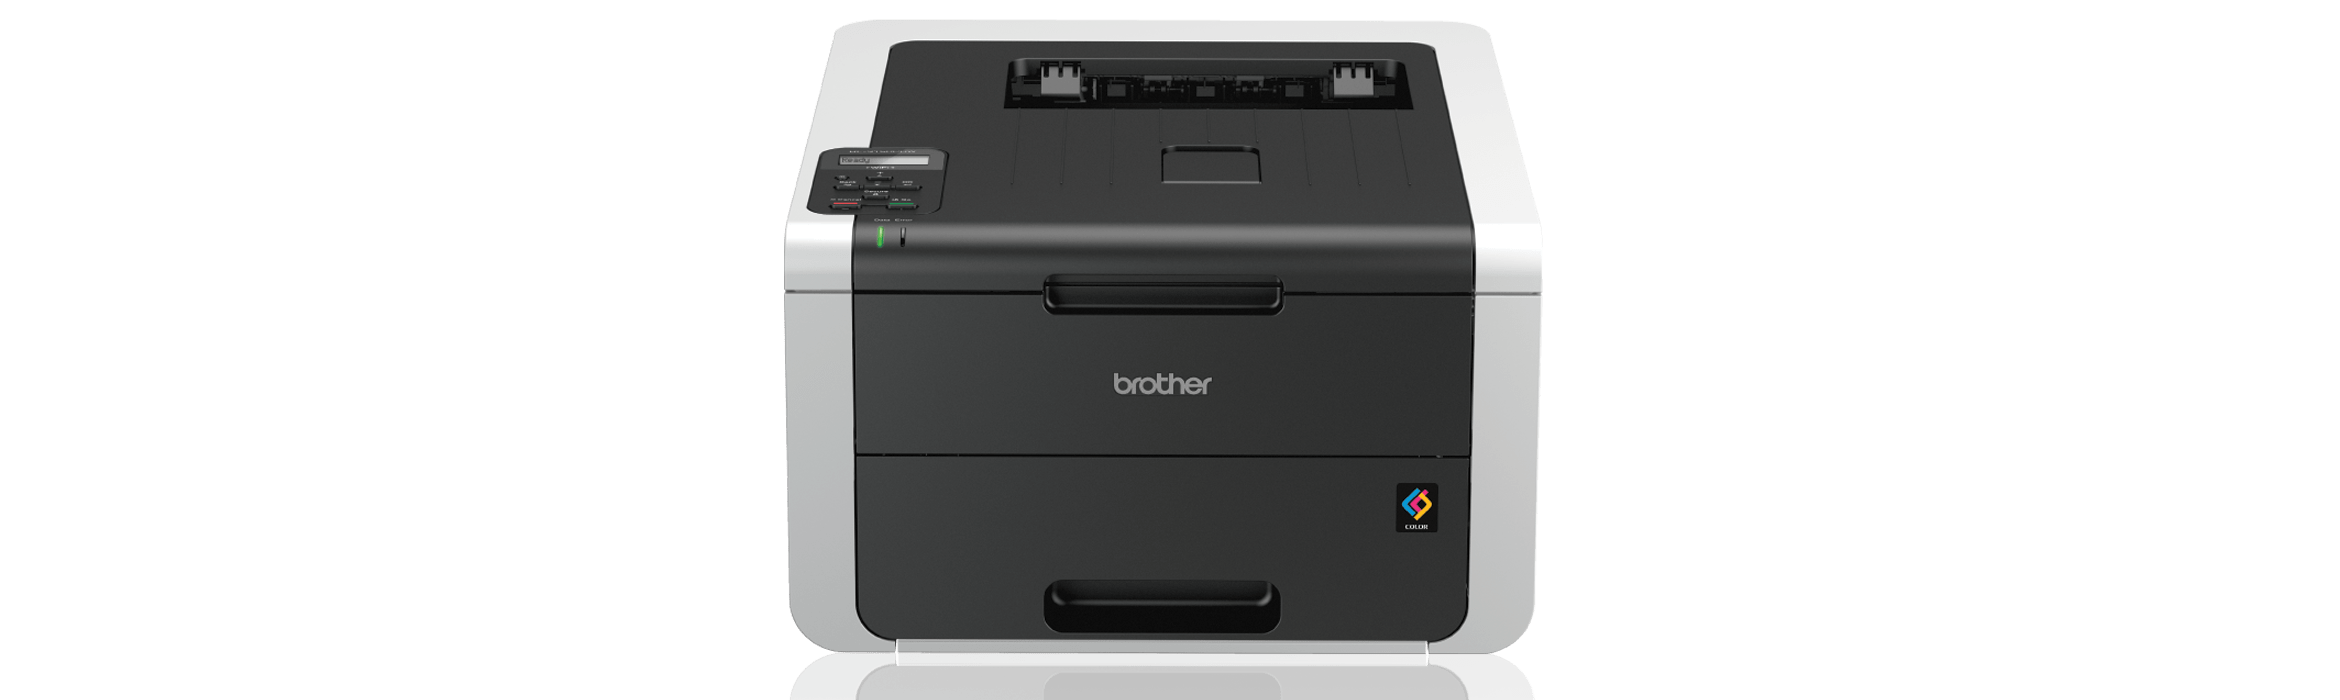 Image shows Brother HL3170CDW Wireless Colour Laser Printer on promotion